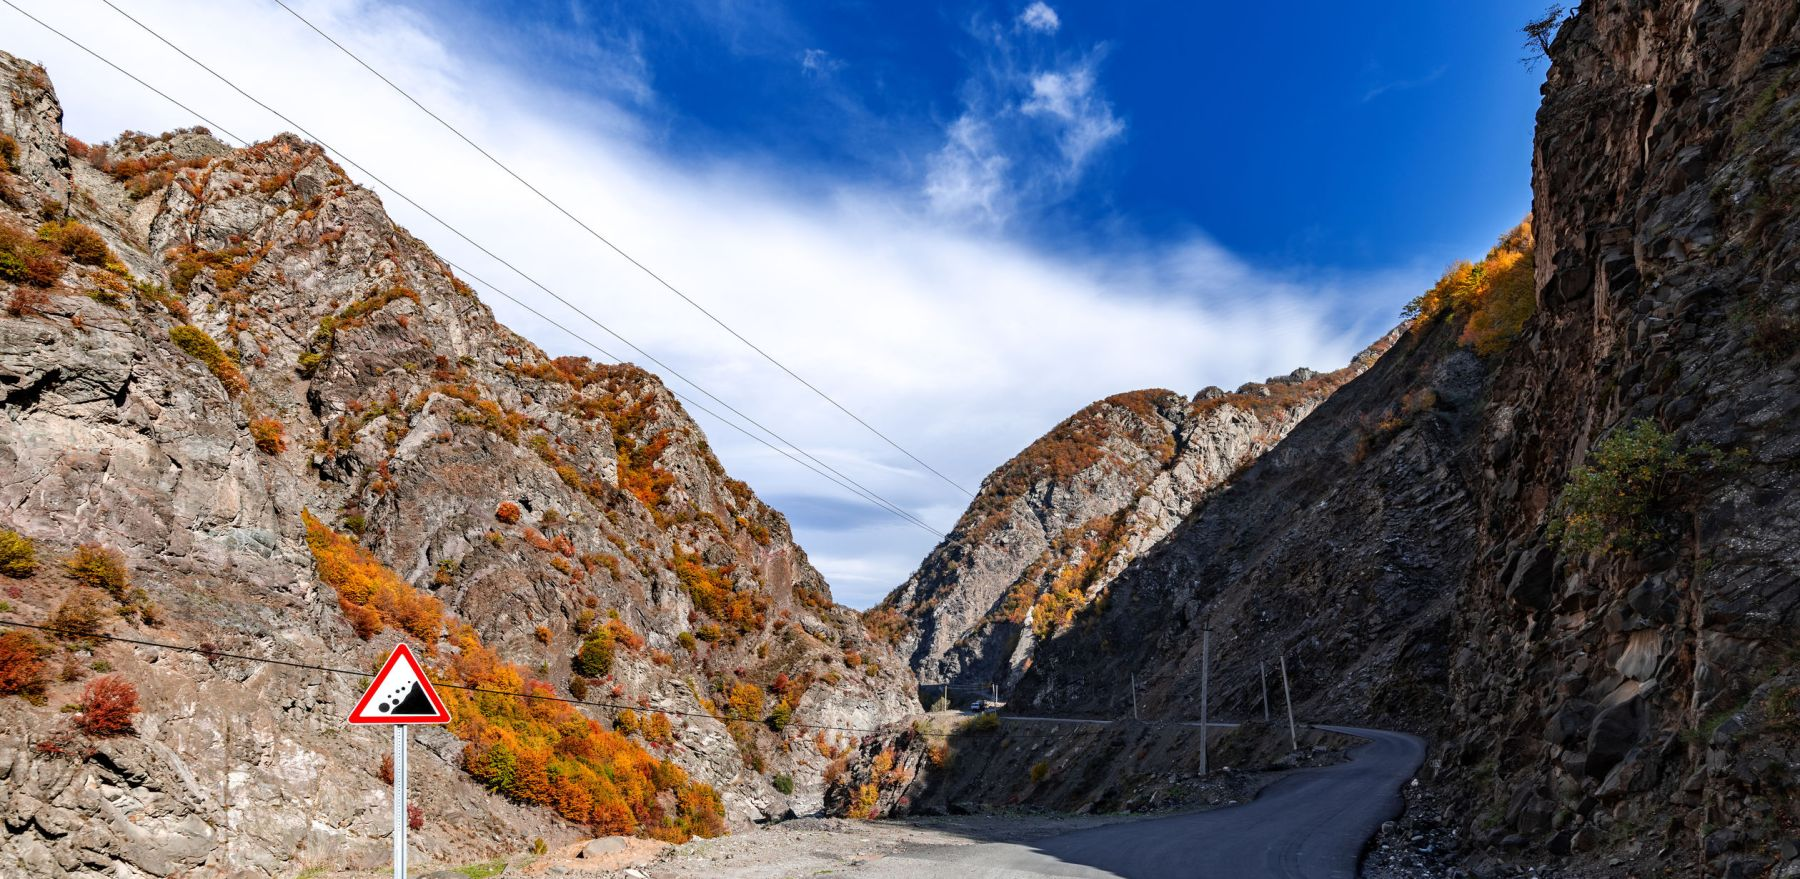 The road to the mountain gorge